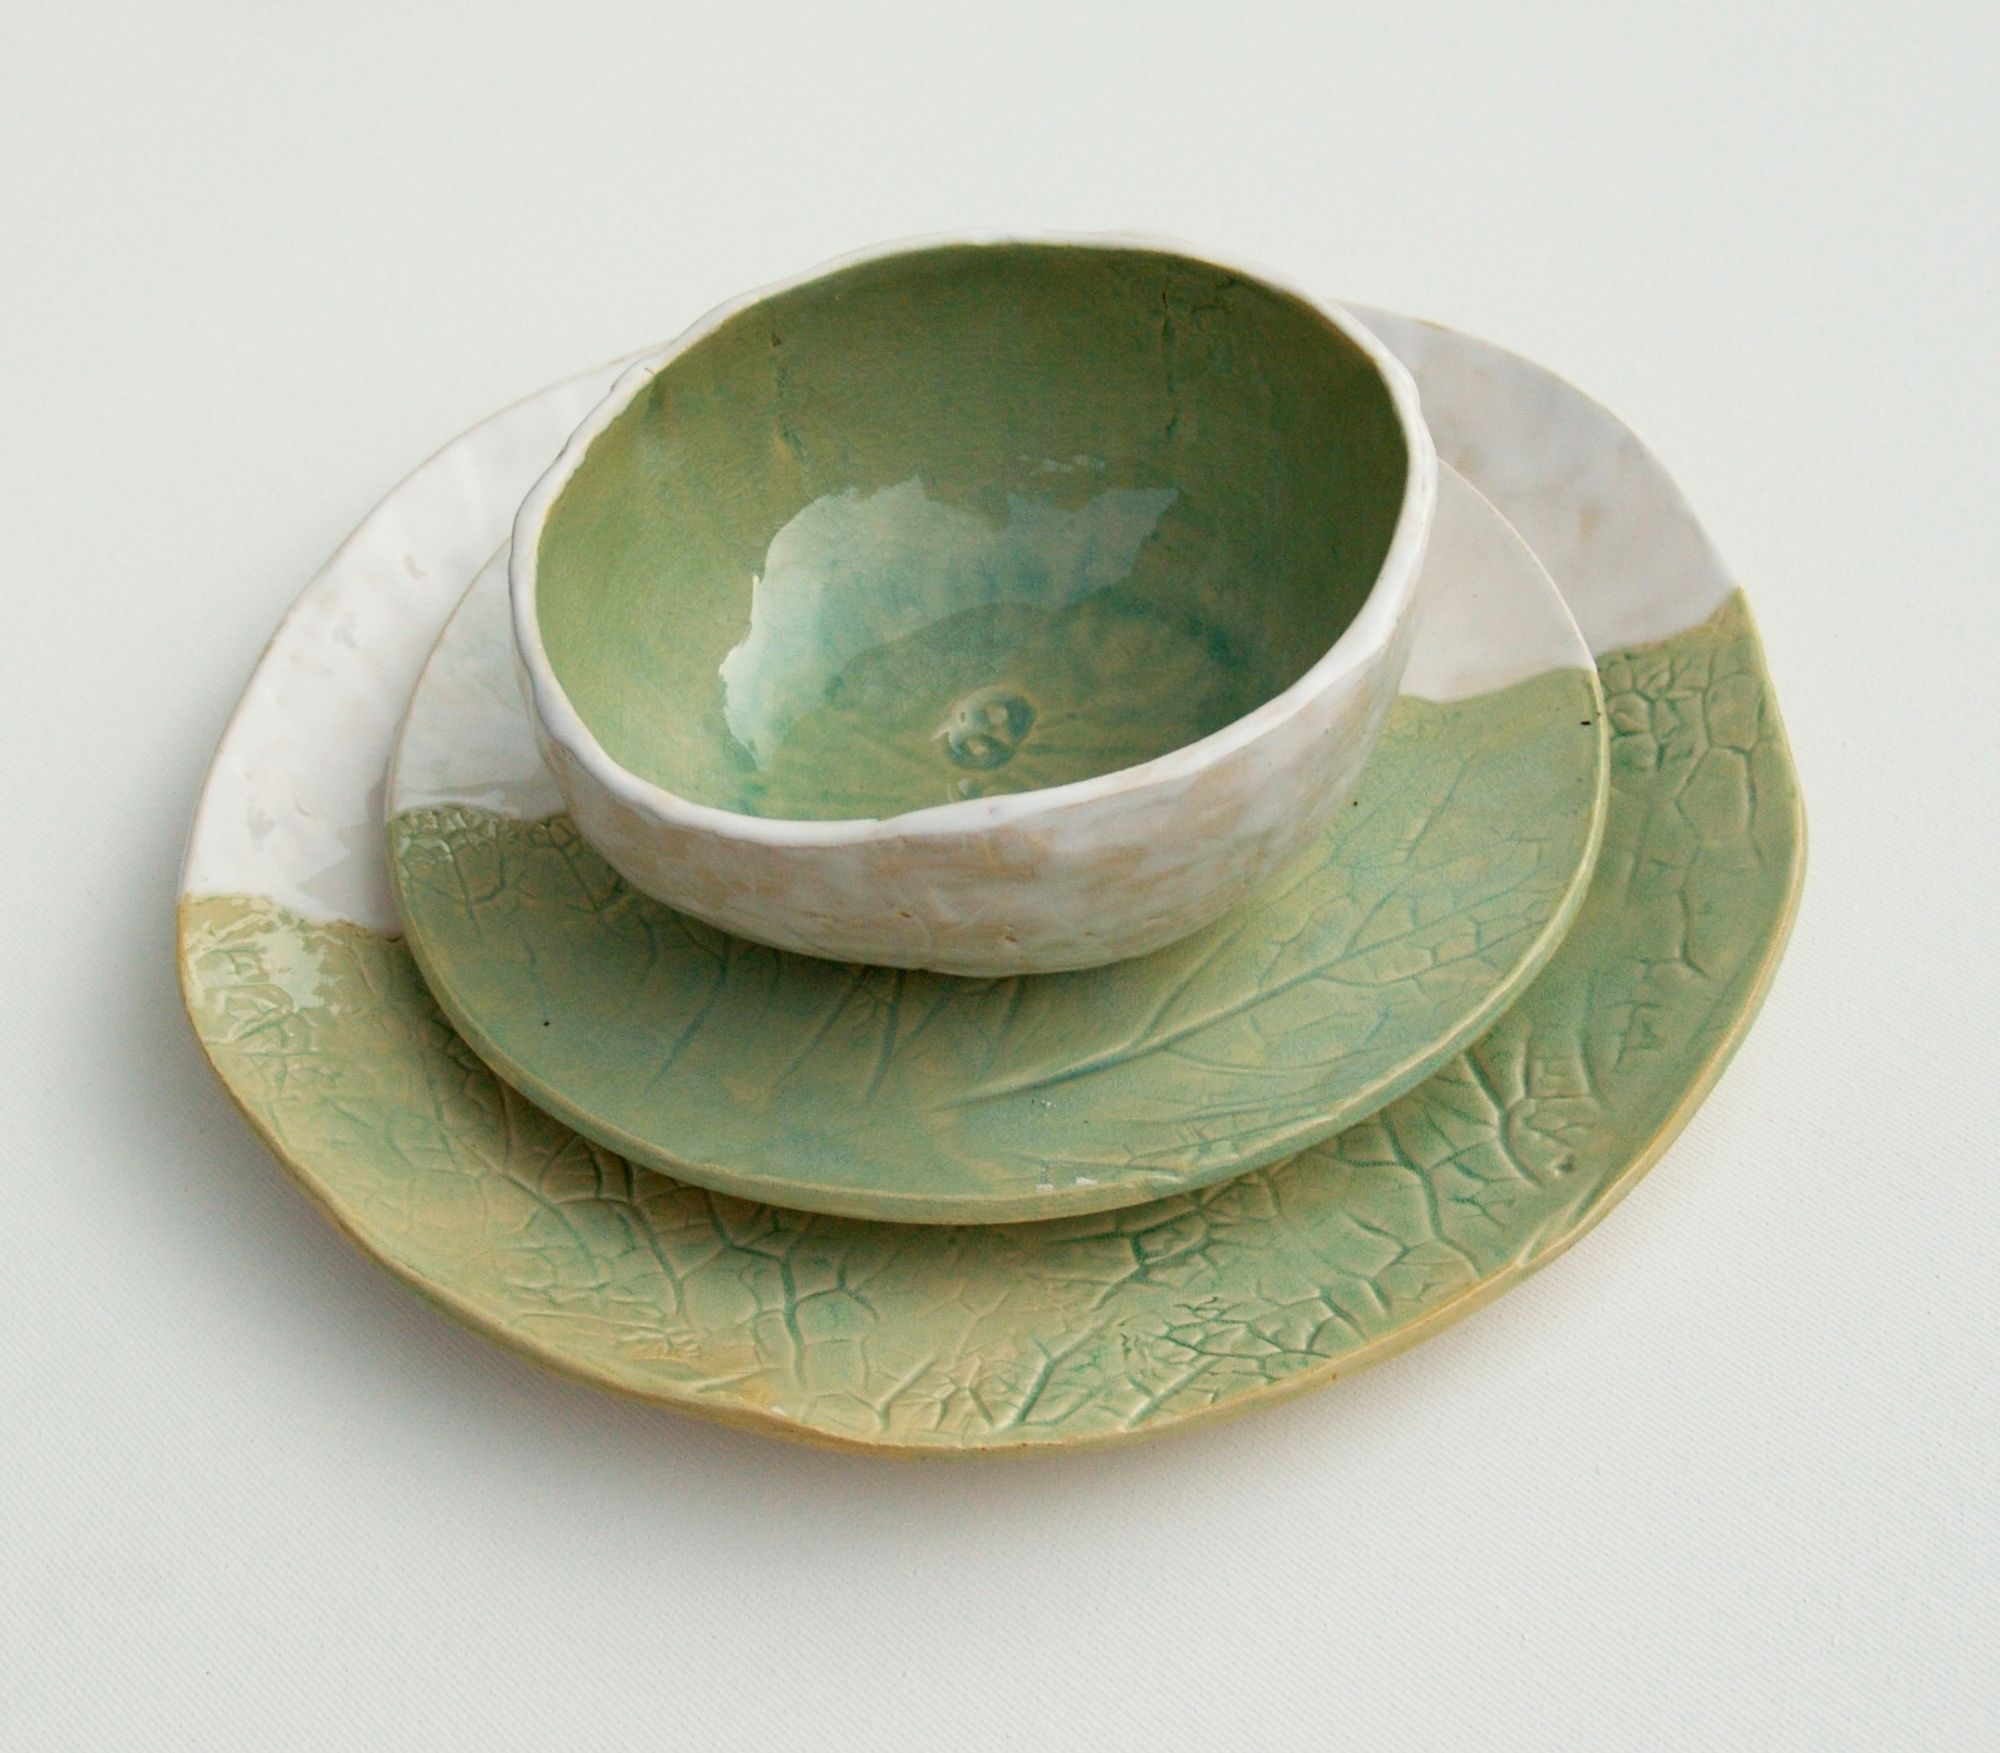 Amazing ceramics from By Blue Birds, Etsy seller from Poland. She's making functional pottery for your home. Tableware & teaware in amazing colors. These plates have pressed cabbage leaves, bowl was formed on pumpkin. #functionalceramics #handmadedinnerware #pottery #ceramicbowl #polishpottery Find @ByBlueBirds on Instagram.